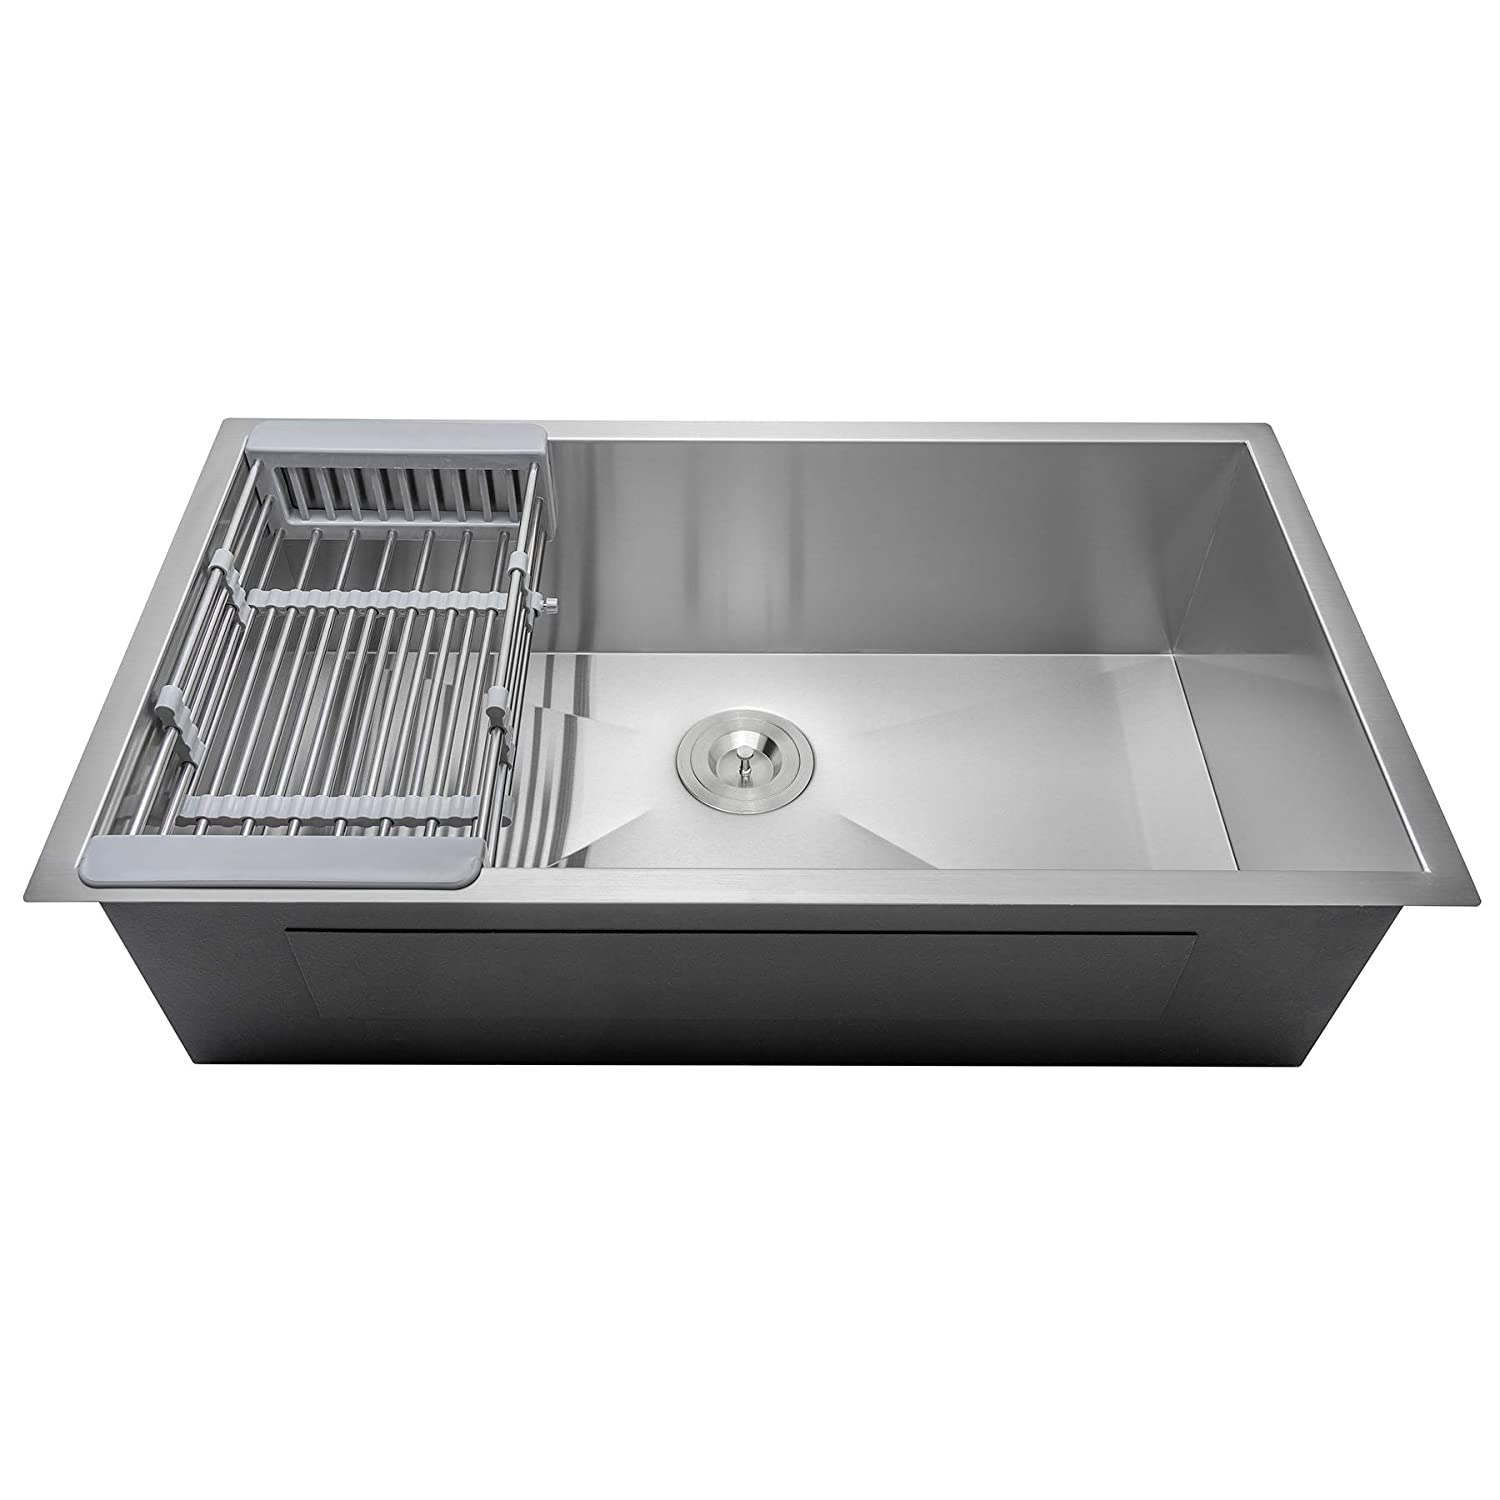 Bokaiya 33 Farmhouse Apron Front Sink Commercial 16 Gauge Undermount Deep Drop In Single Bowl Kitchen Sink, Stainless Steel